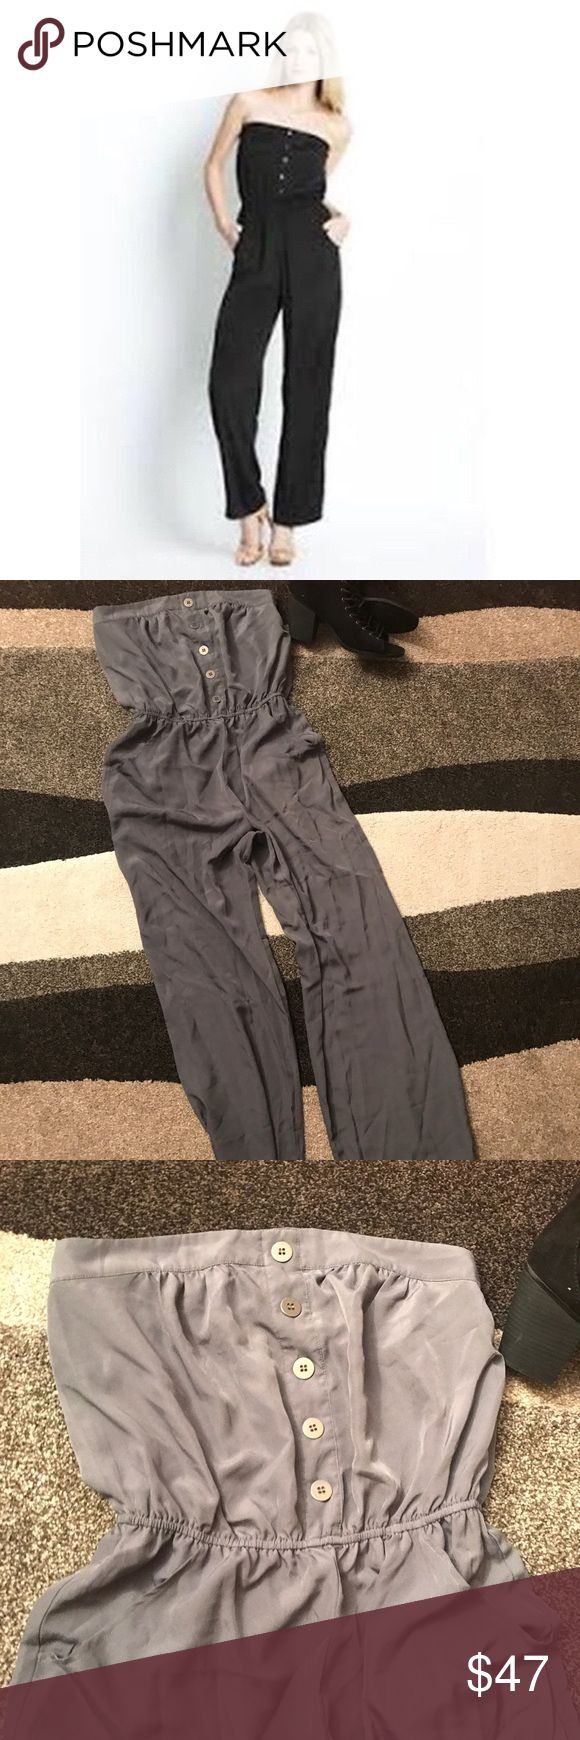 WALTER by Walter Baker: Pocketed Button Jumpsuit It's always fun to look feel beautiful and to make it look effortless.  This easy jumpsuit by Walter Baker does just that.   The elastic top prevents the slipping that is common with most dresses and jumpsuits and the tailored, elastic waist also gives the body a naturally proportioned shape.   Features two pockets in the front and a bonus stylish pocket in back.  Pair with a loose cardigan, a Moto jacket, or even a cropped sweater or bolero…